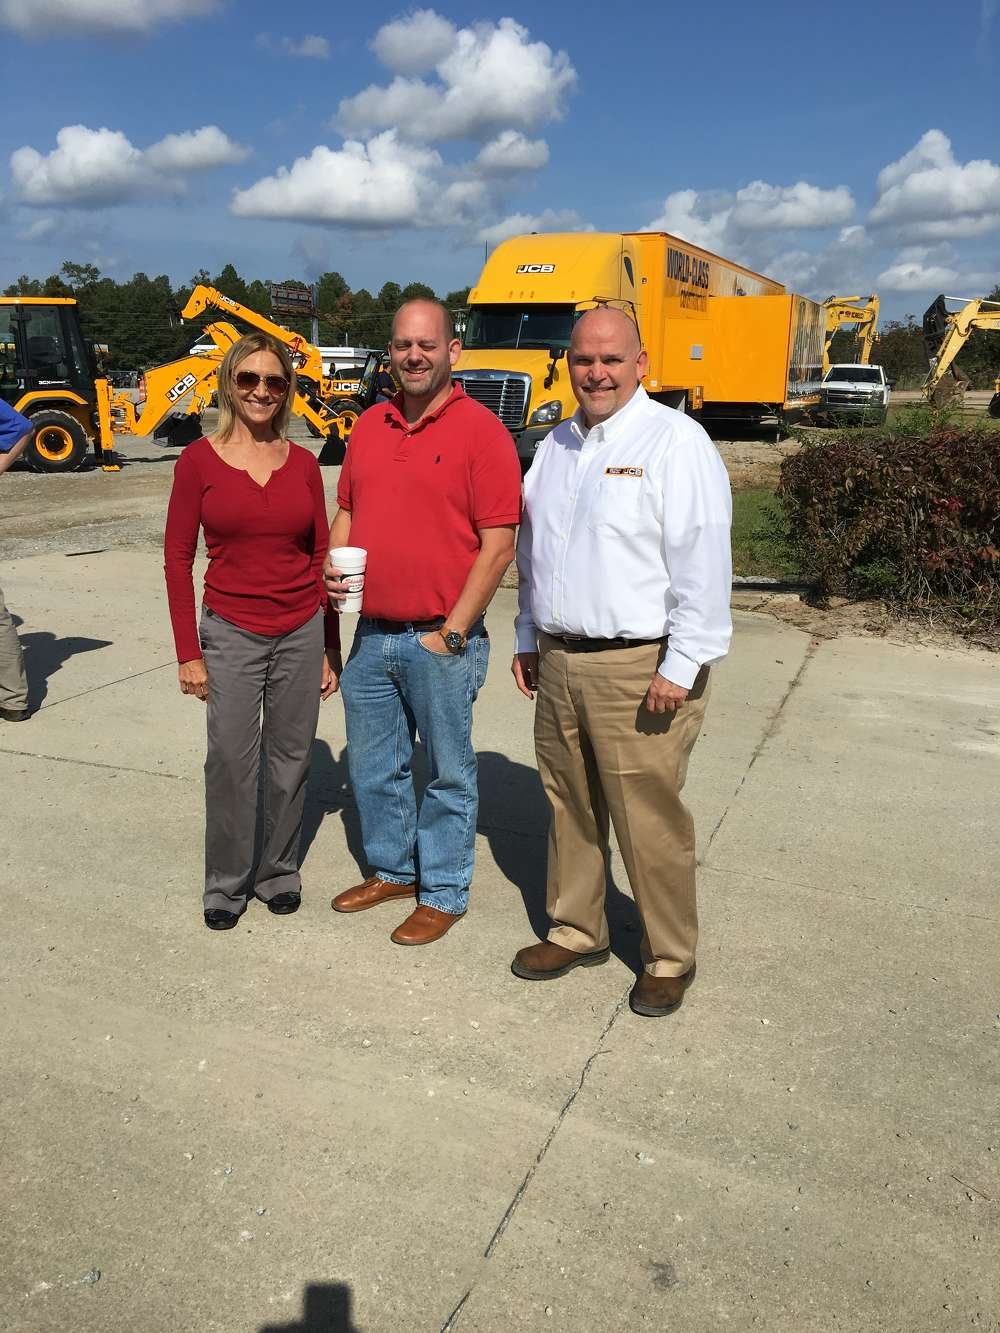 (L-R): Twilla Jeffcoat and Ted Thames, both of SCE&G, receive a warm welcome to the event by Cam Gabbard of Company Wrench.